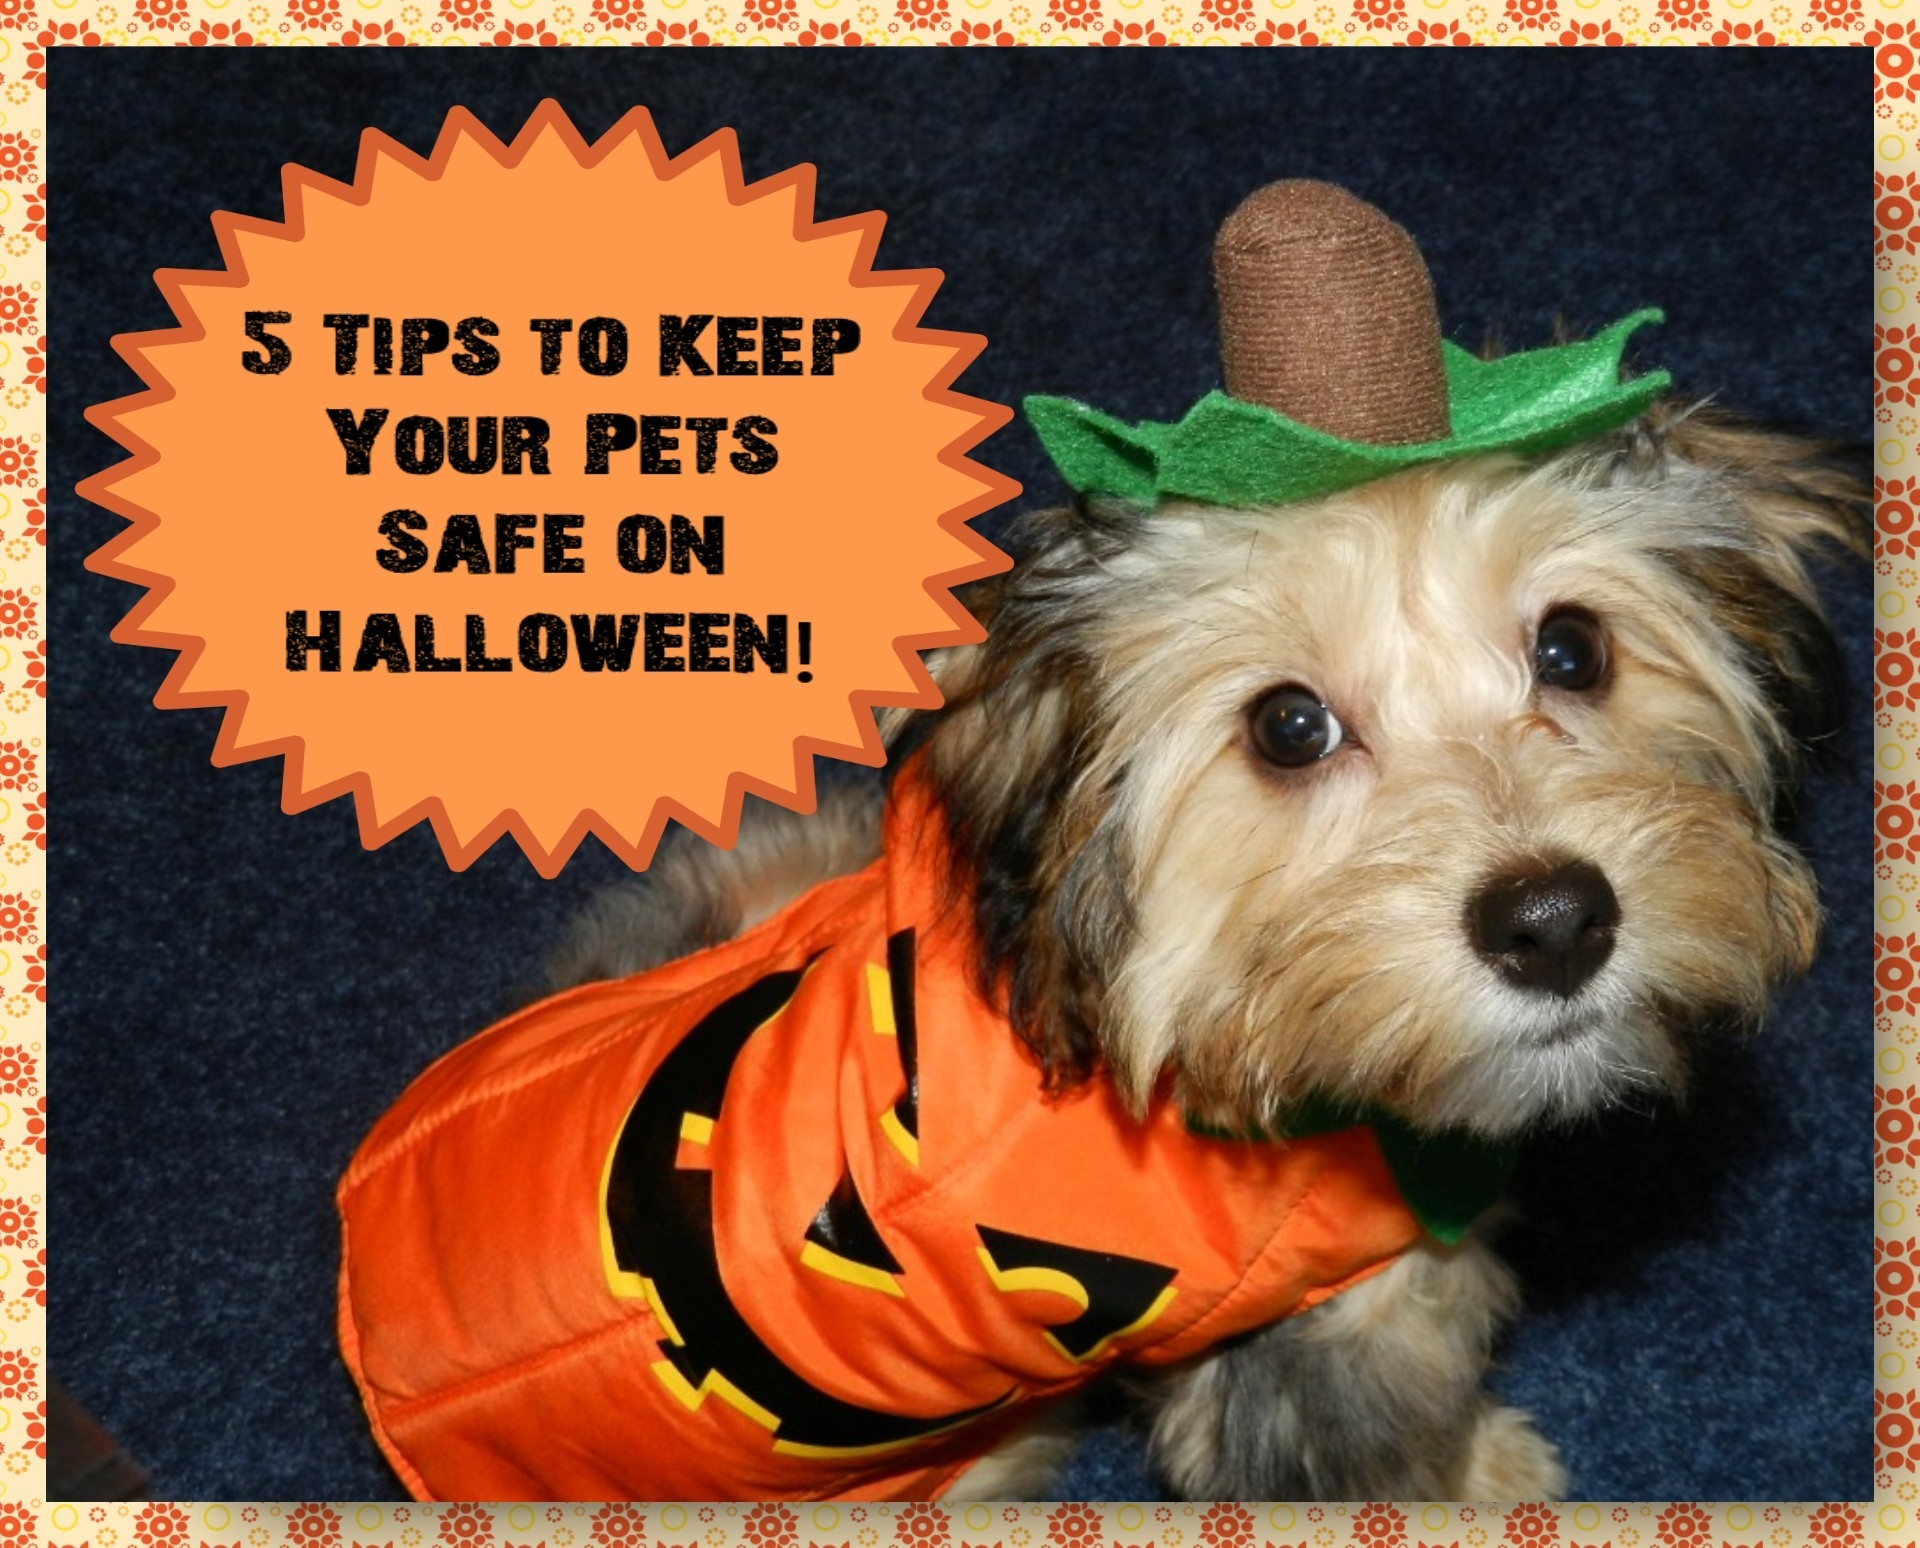 5 Tips to Keep Your Pets Safe on Halloween!